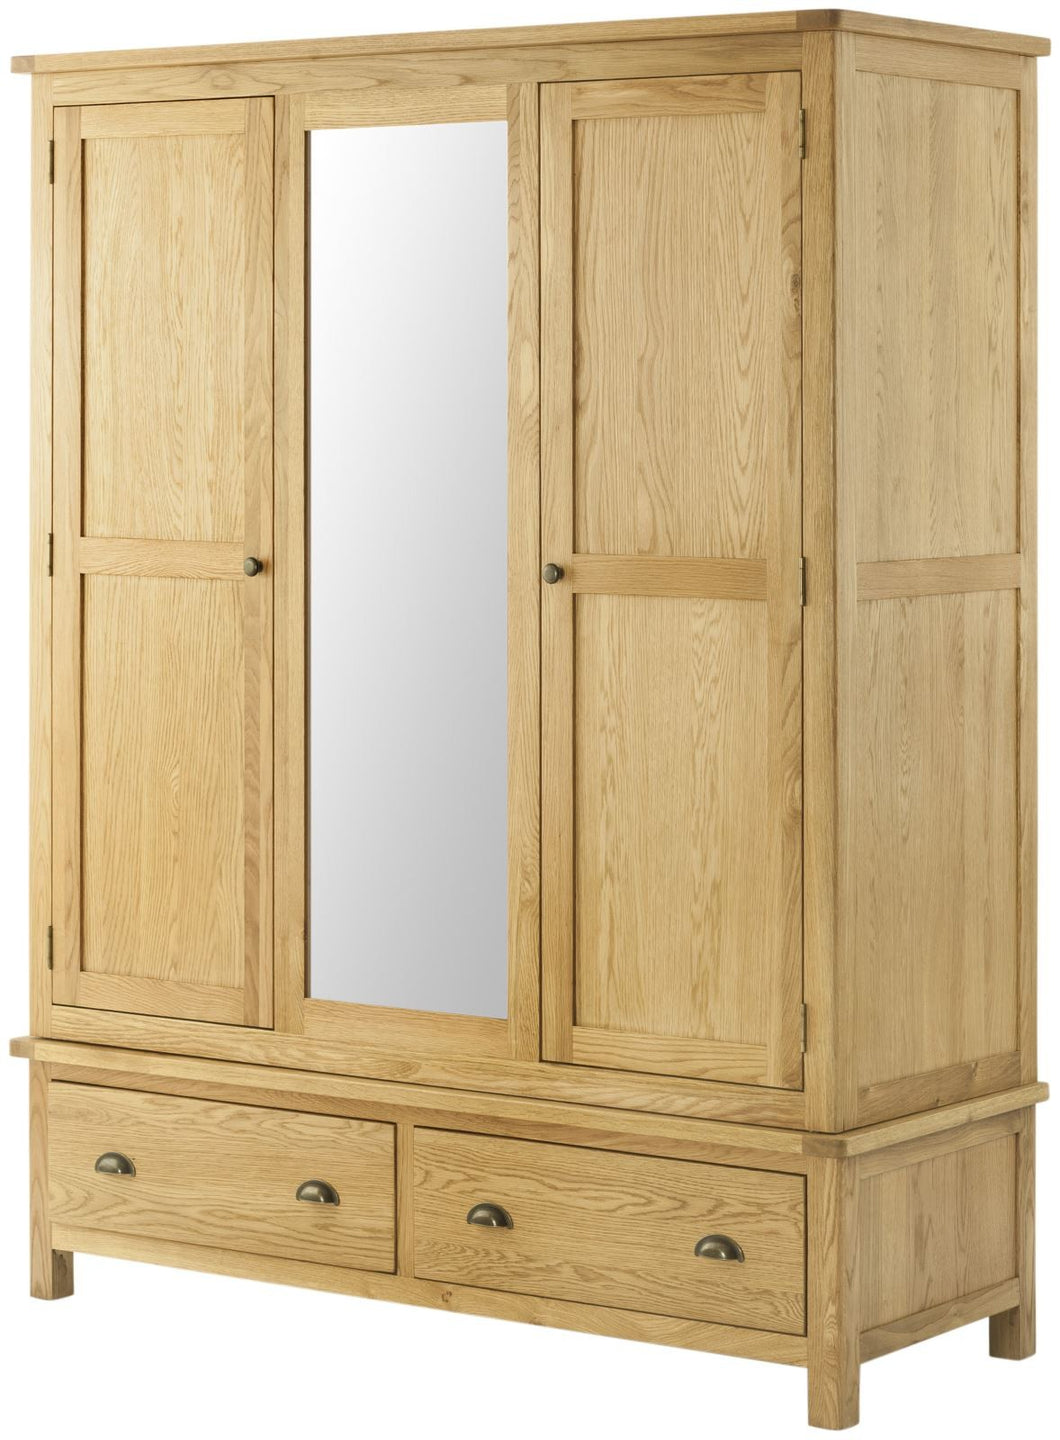 Cottage Triple Wardrobe Oak - Tylers Department Store